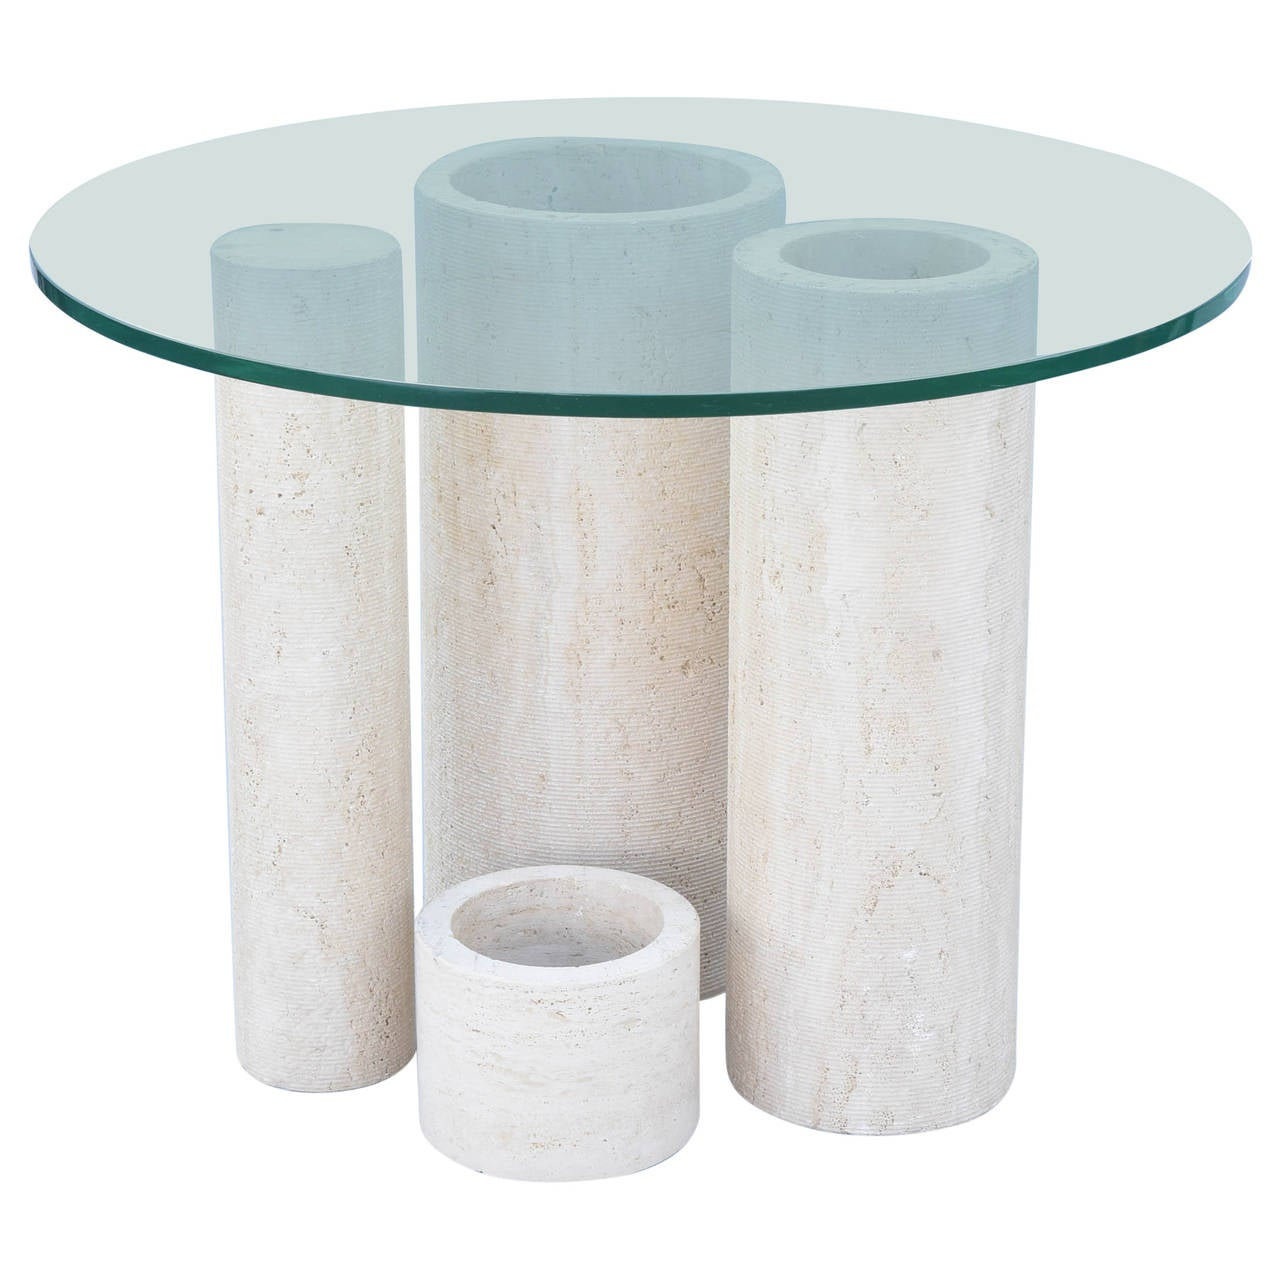 Graduated Travertine Cylindrical Table Base with Glass Top  : 2874313l from www.1stdibs.com size 1280 x 1280 jpeg 114kB